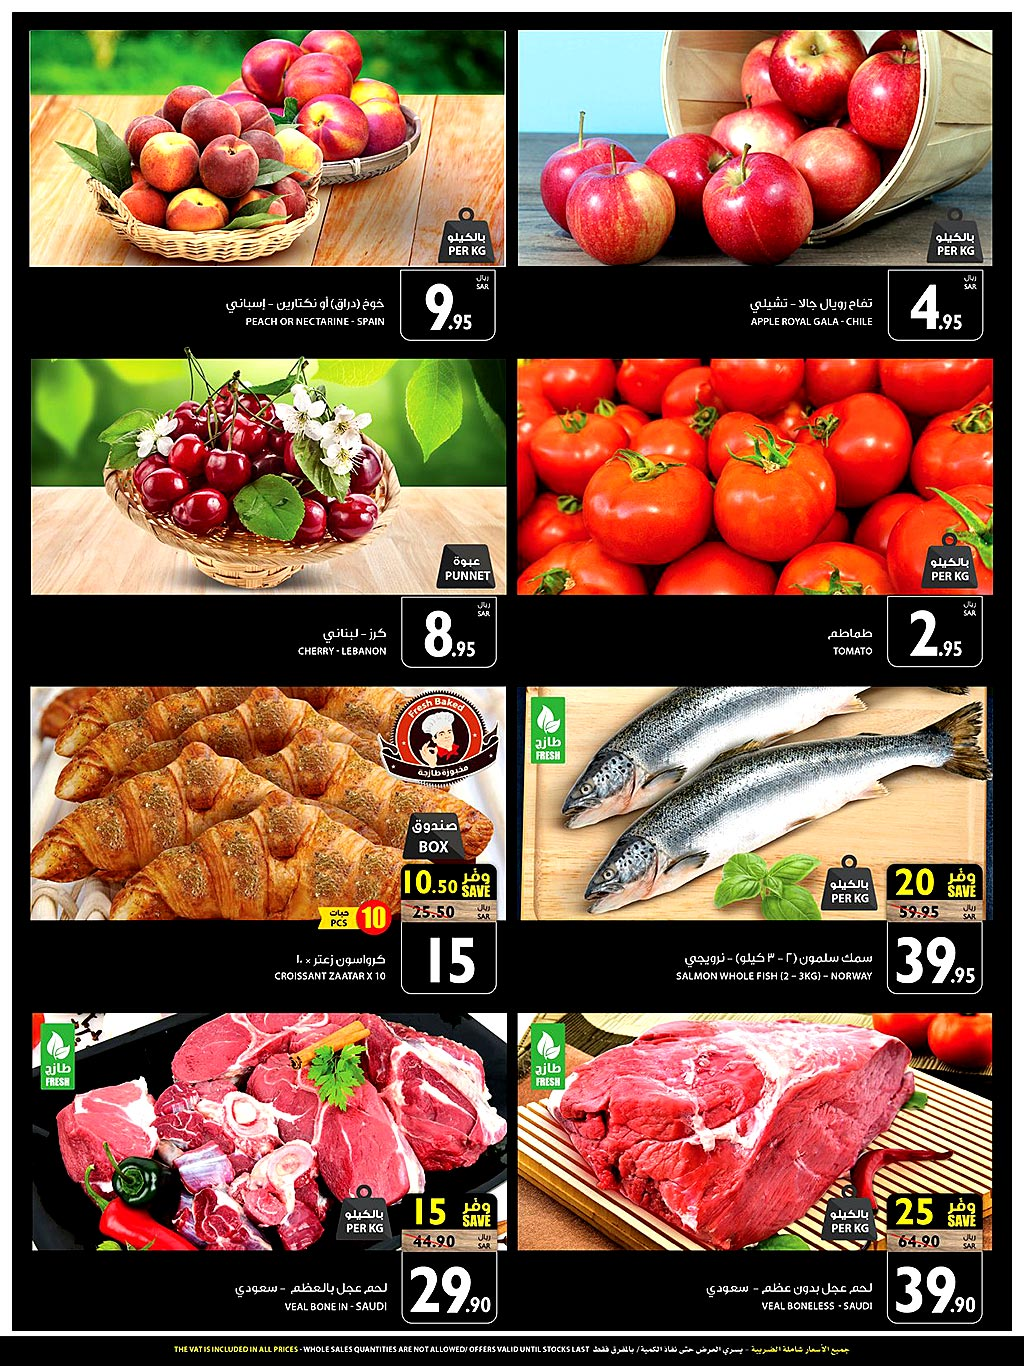 carrefour offers from 22july to 25july 2020 page number 4 عروض كارفور-السعودية من 22 يوليو حتى 25 يوليو 2020 صفحة رقم 4